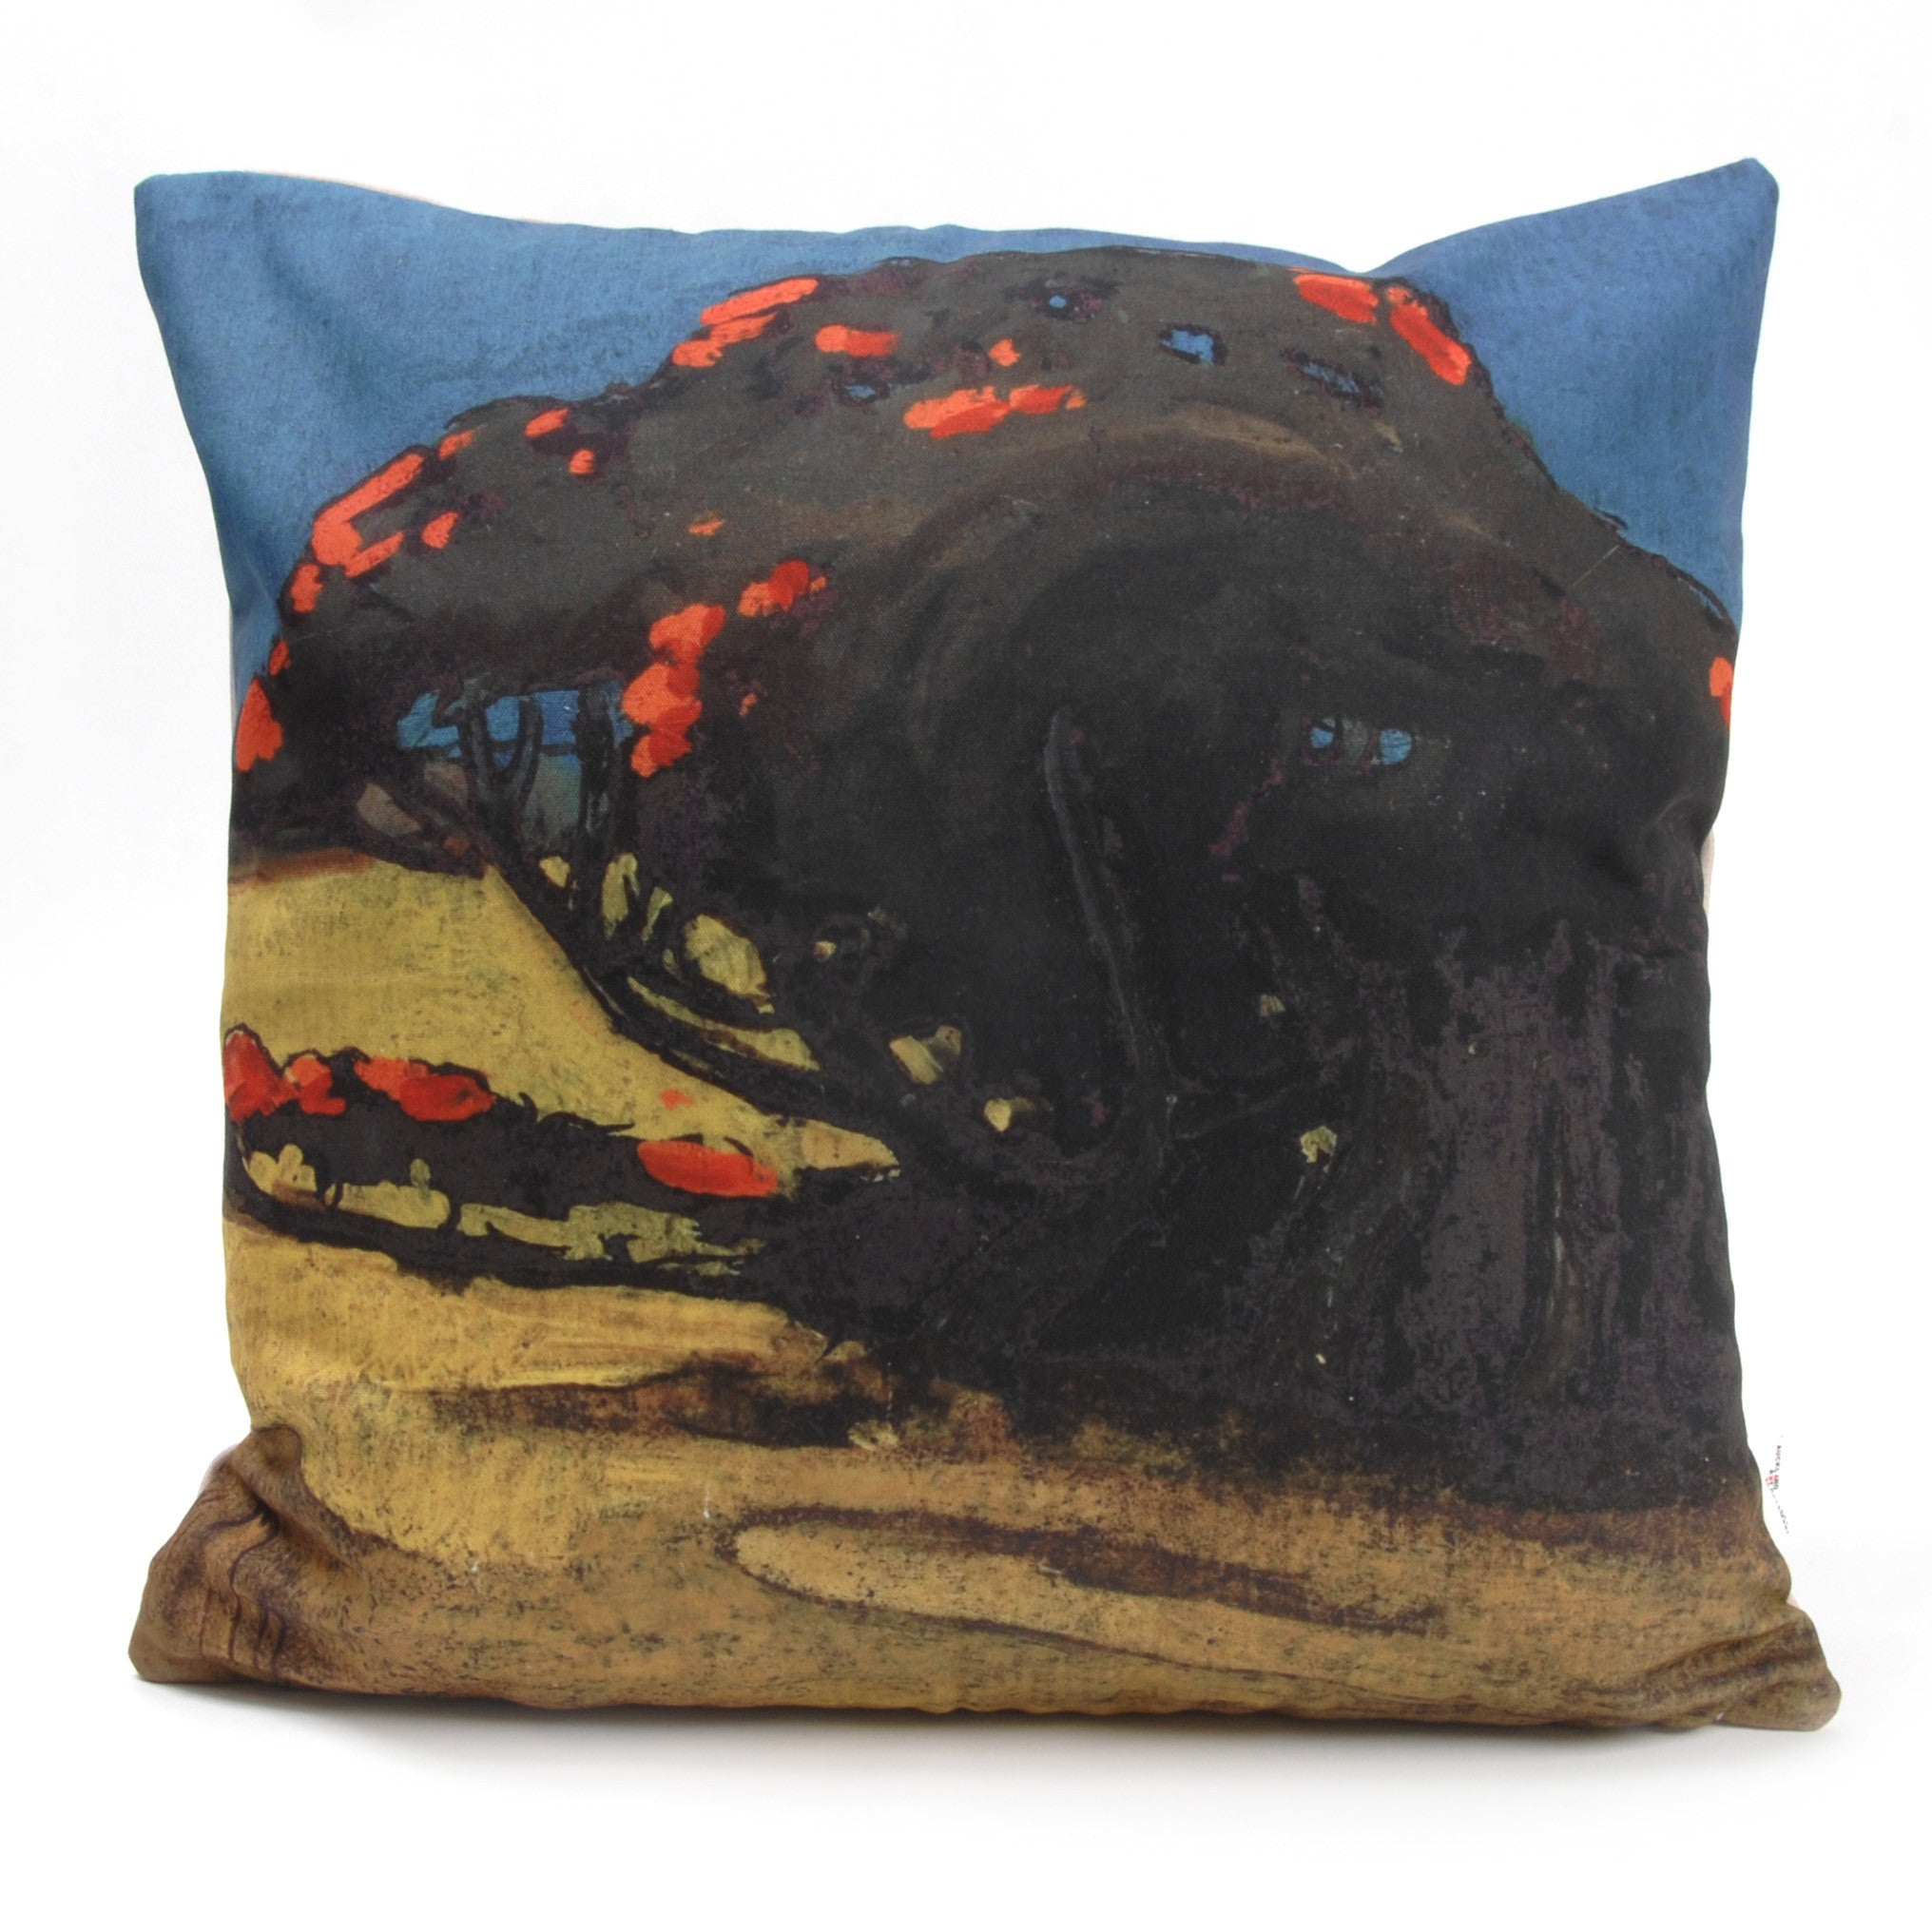 Pohutukawa Cushion Cover Image